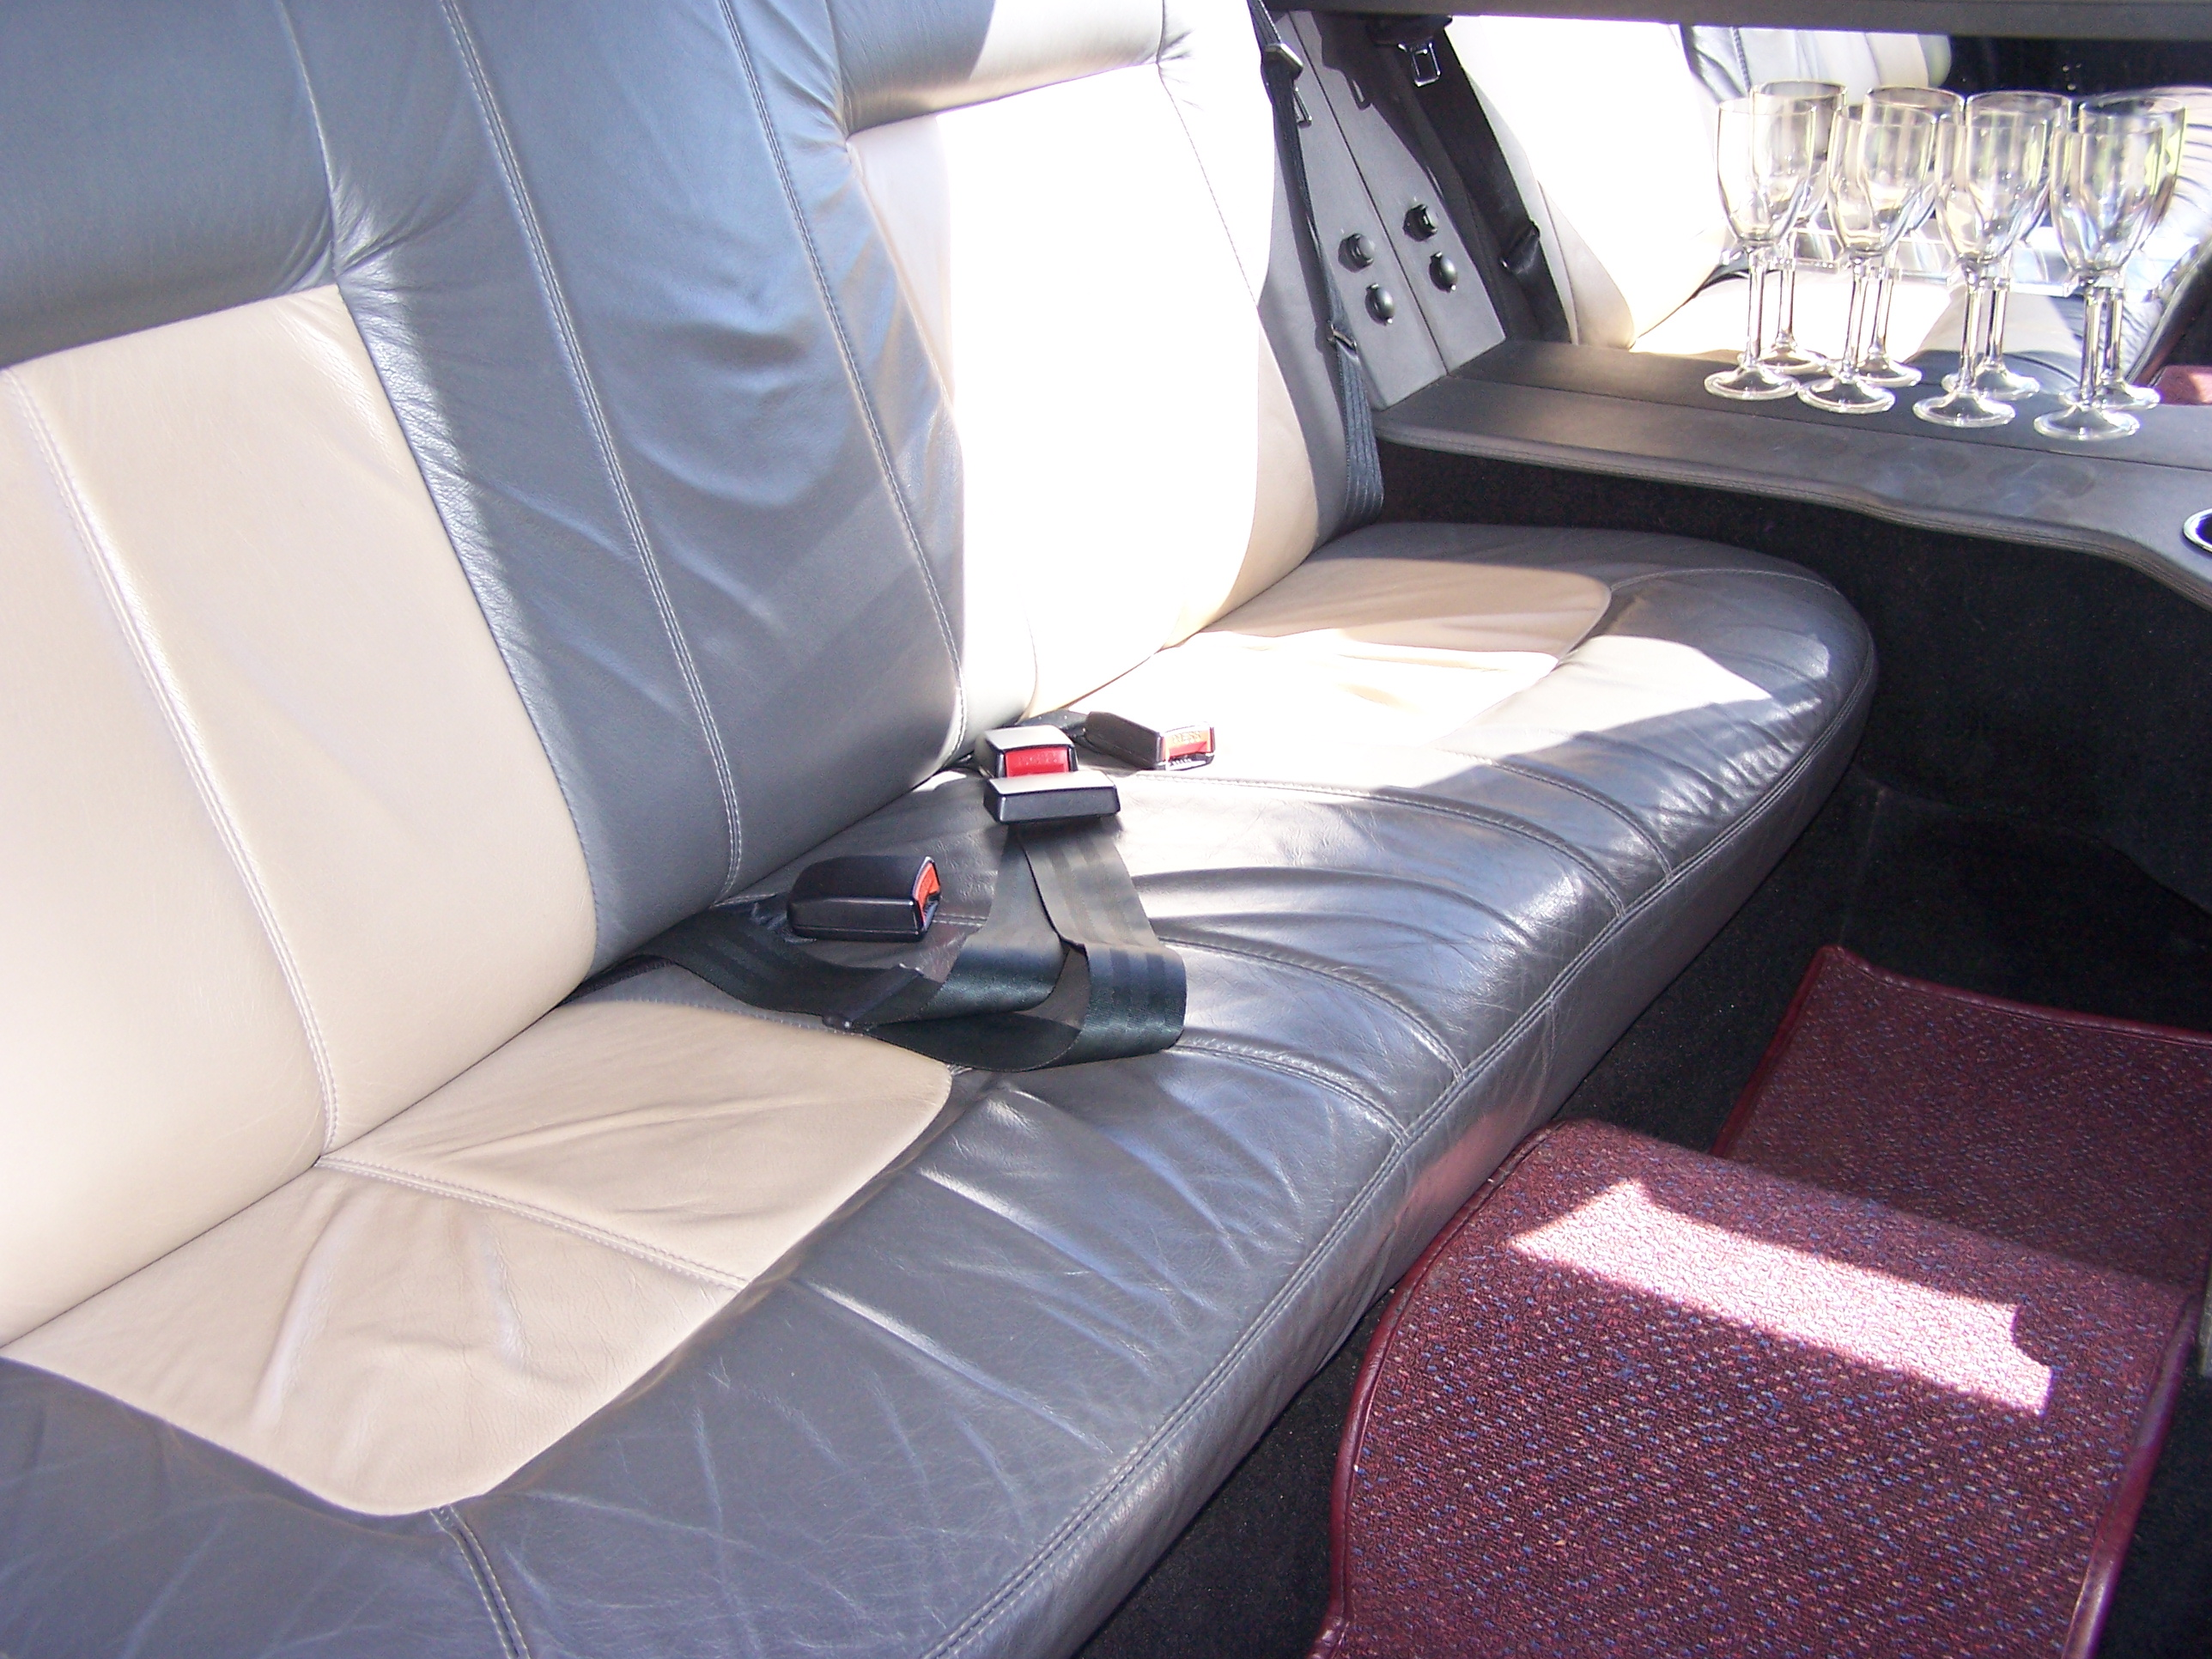 Luxury Leather Interior with Cocktail Bar